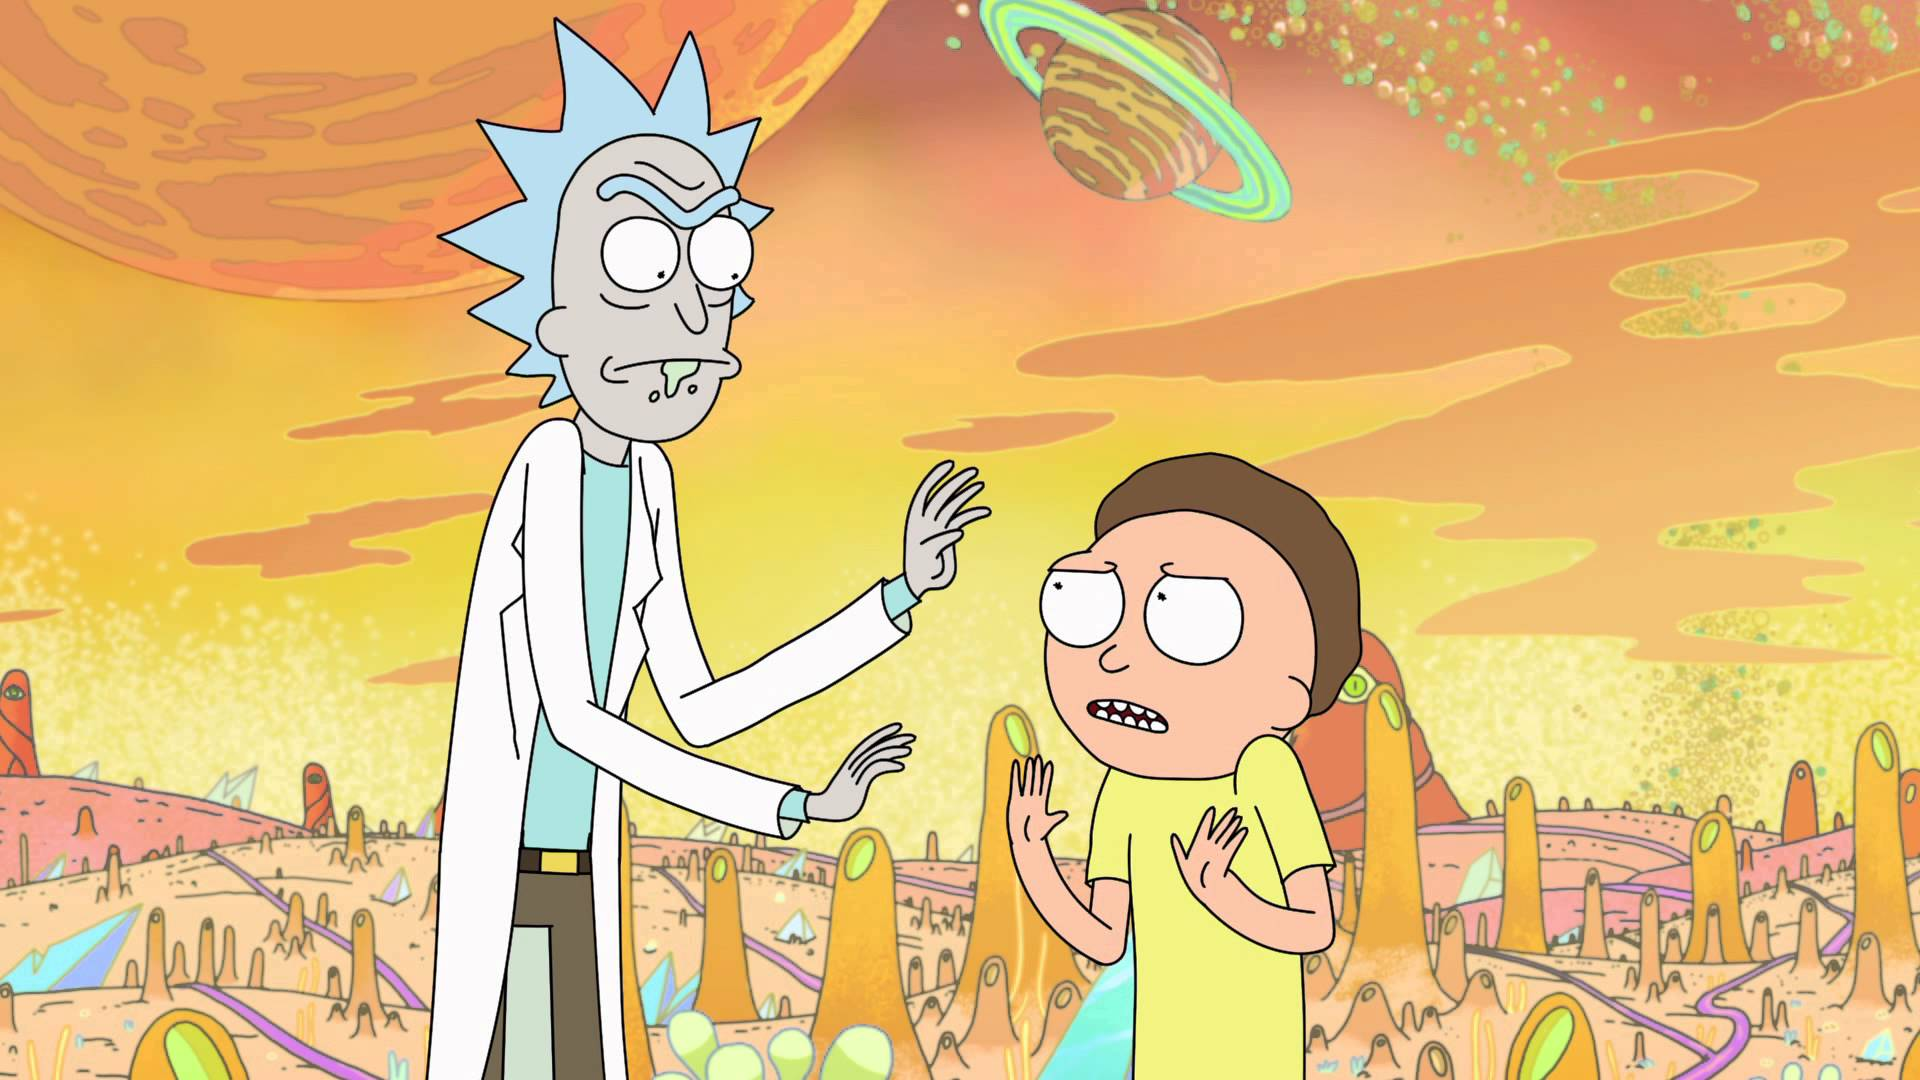 rick-and-morty-ends-season-3-as-number-1-comedy-on-television-social.jpg